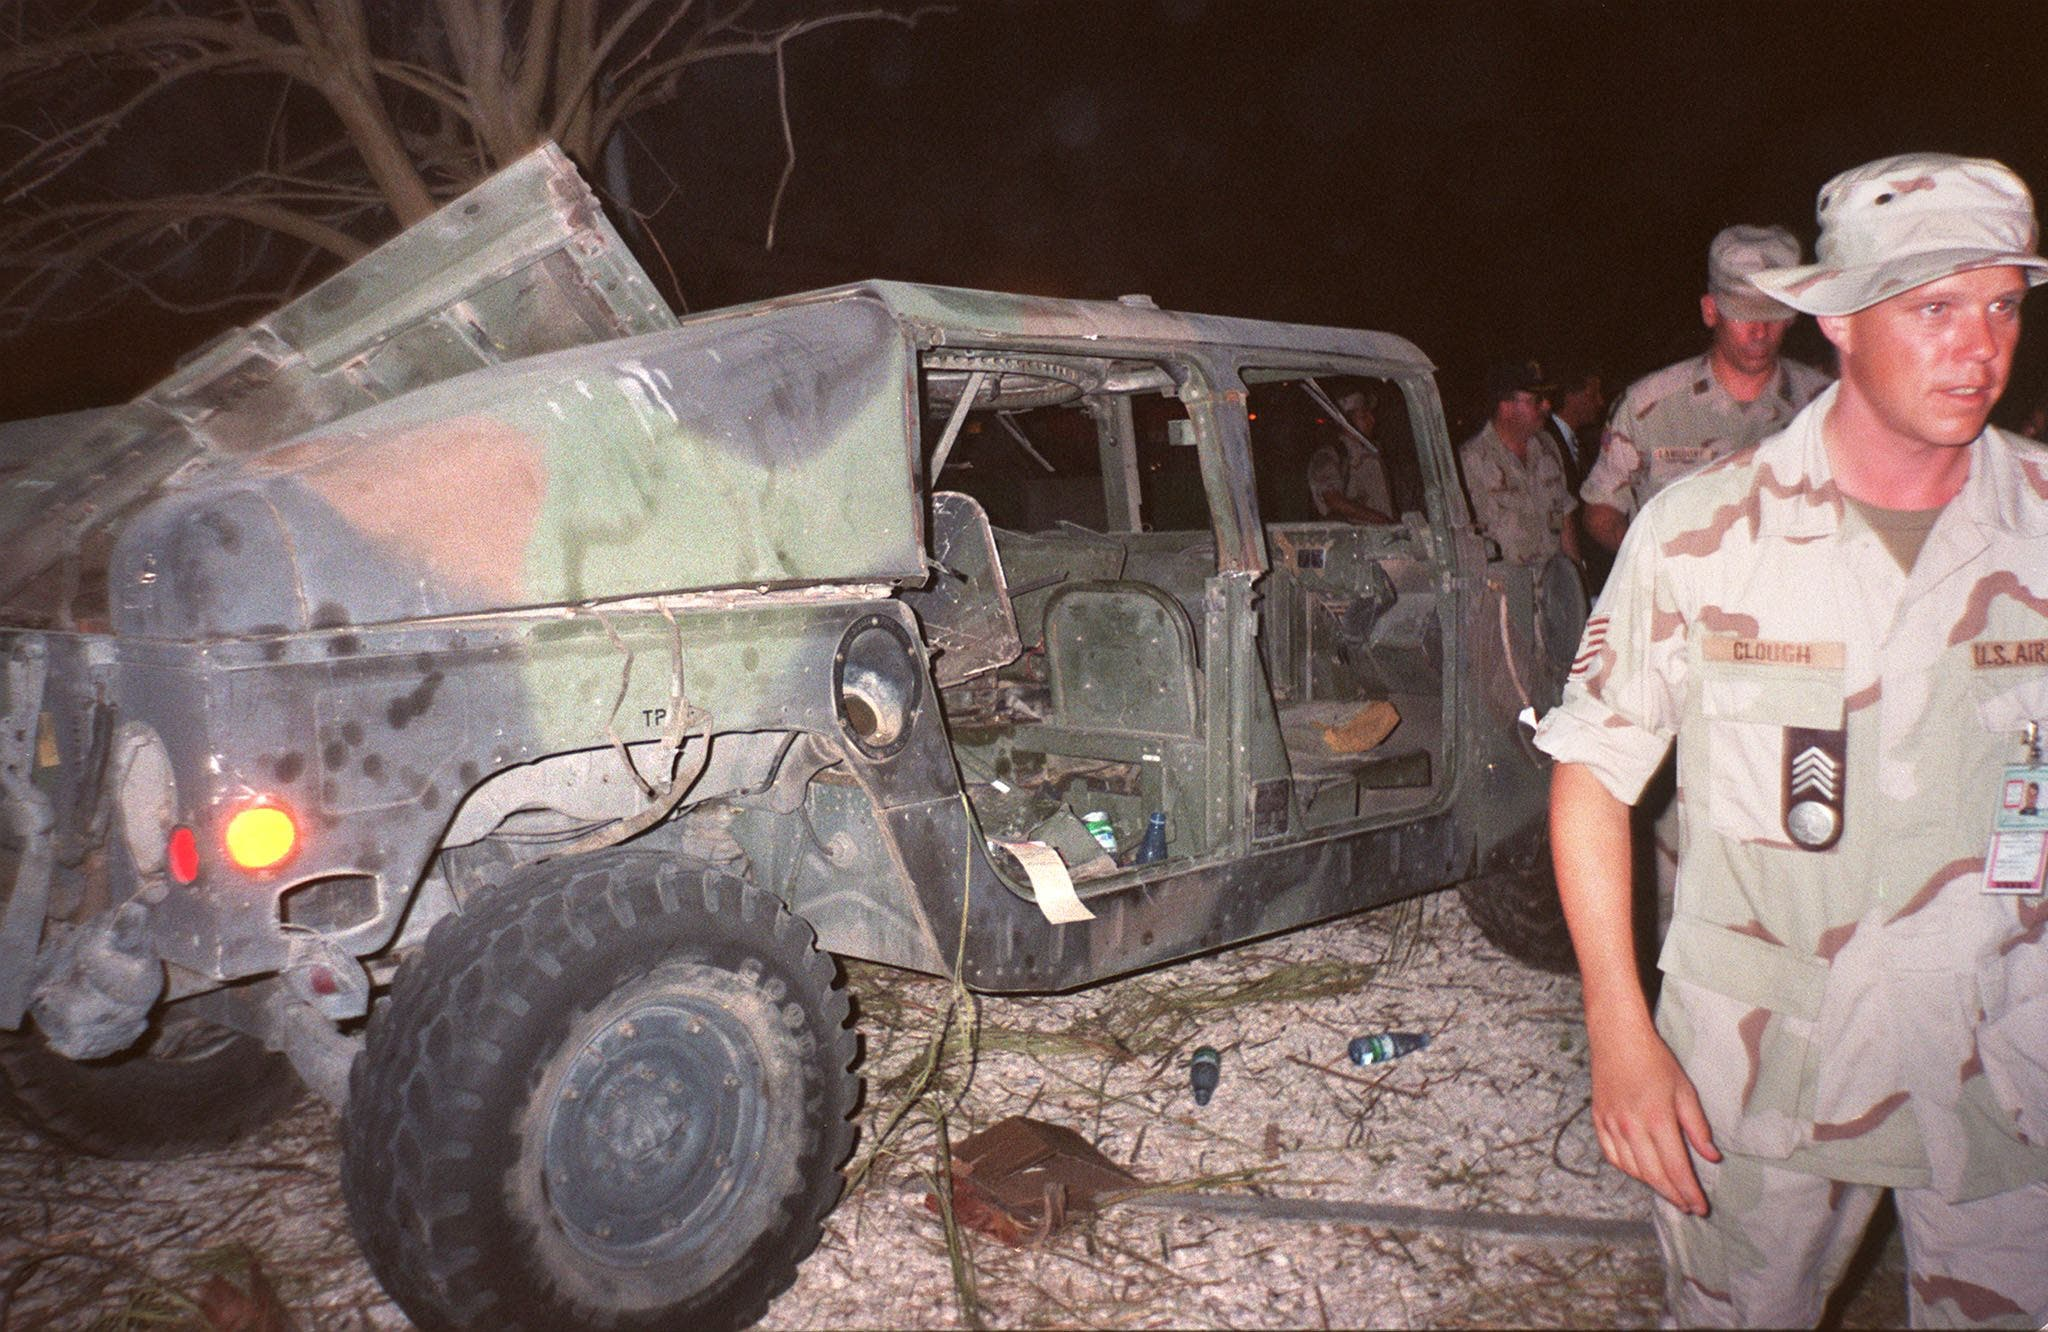 US soldiers pass by a destroyed military truck on June 26, 1996 near the site of the truck bomb which exploded on June 25, 1996 outside a military personnel housing complex in Khobar near Dhahran. (AFP)